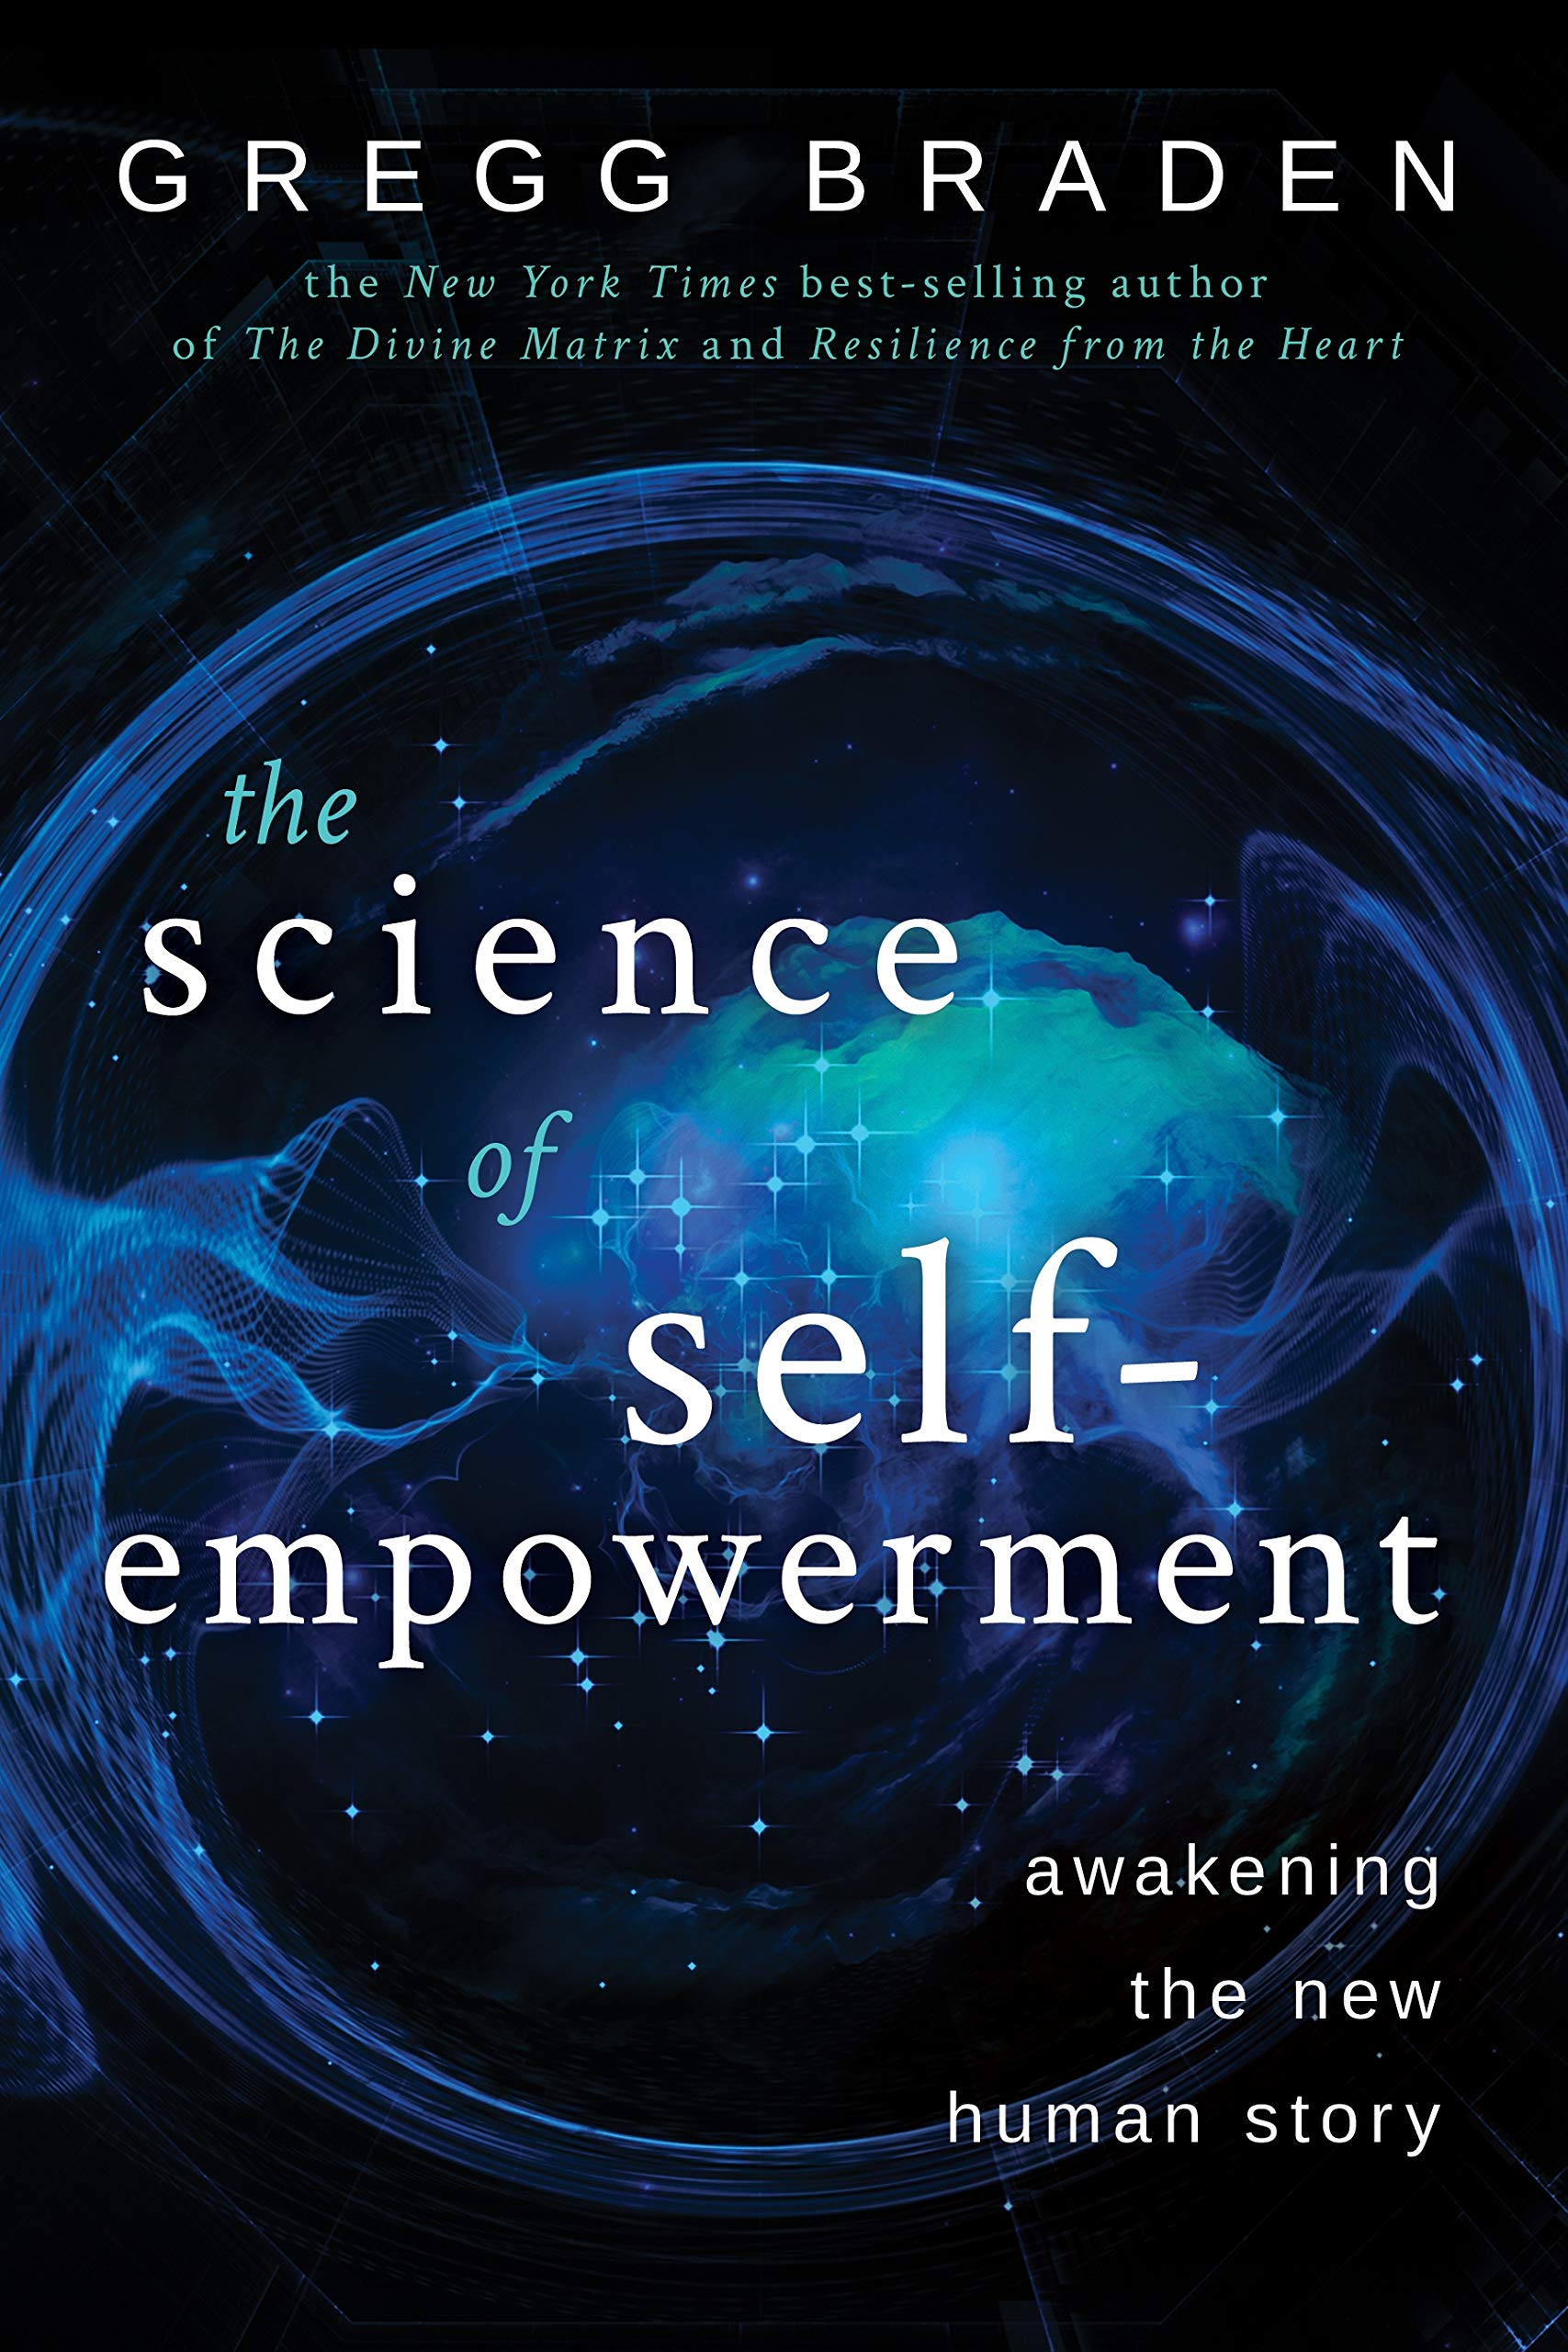 Image OfThe Science Of Self-Empowerment: Awakening The New Human Story